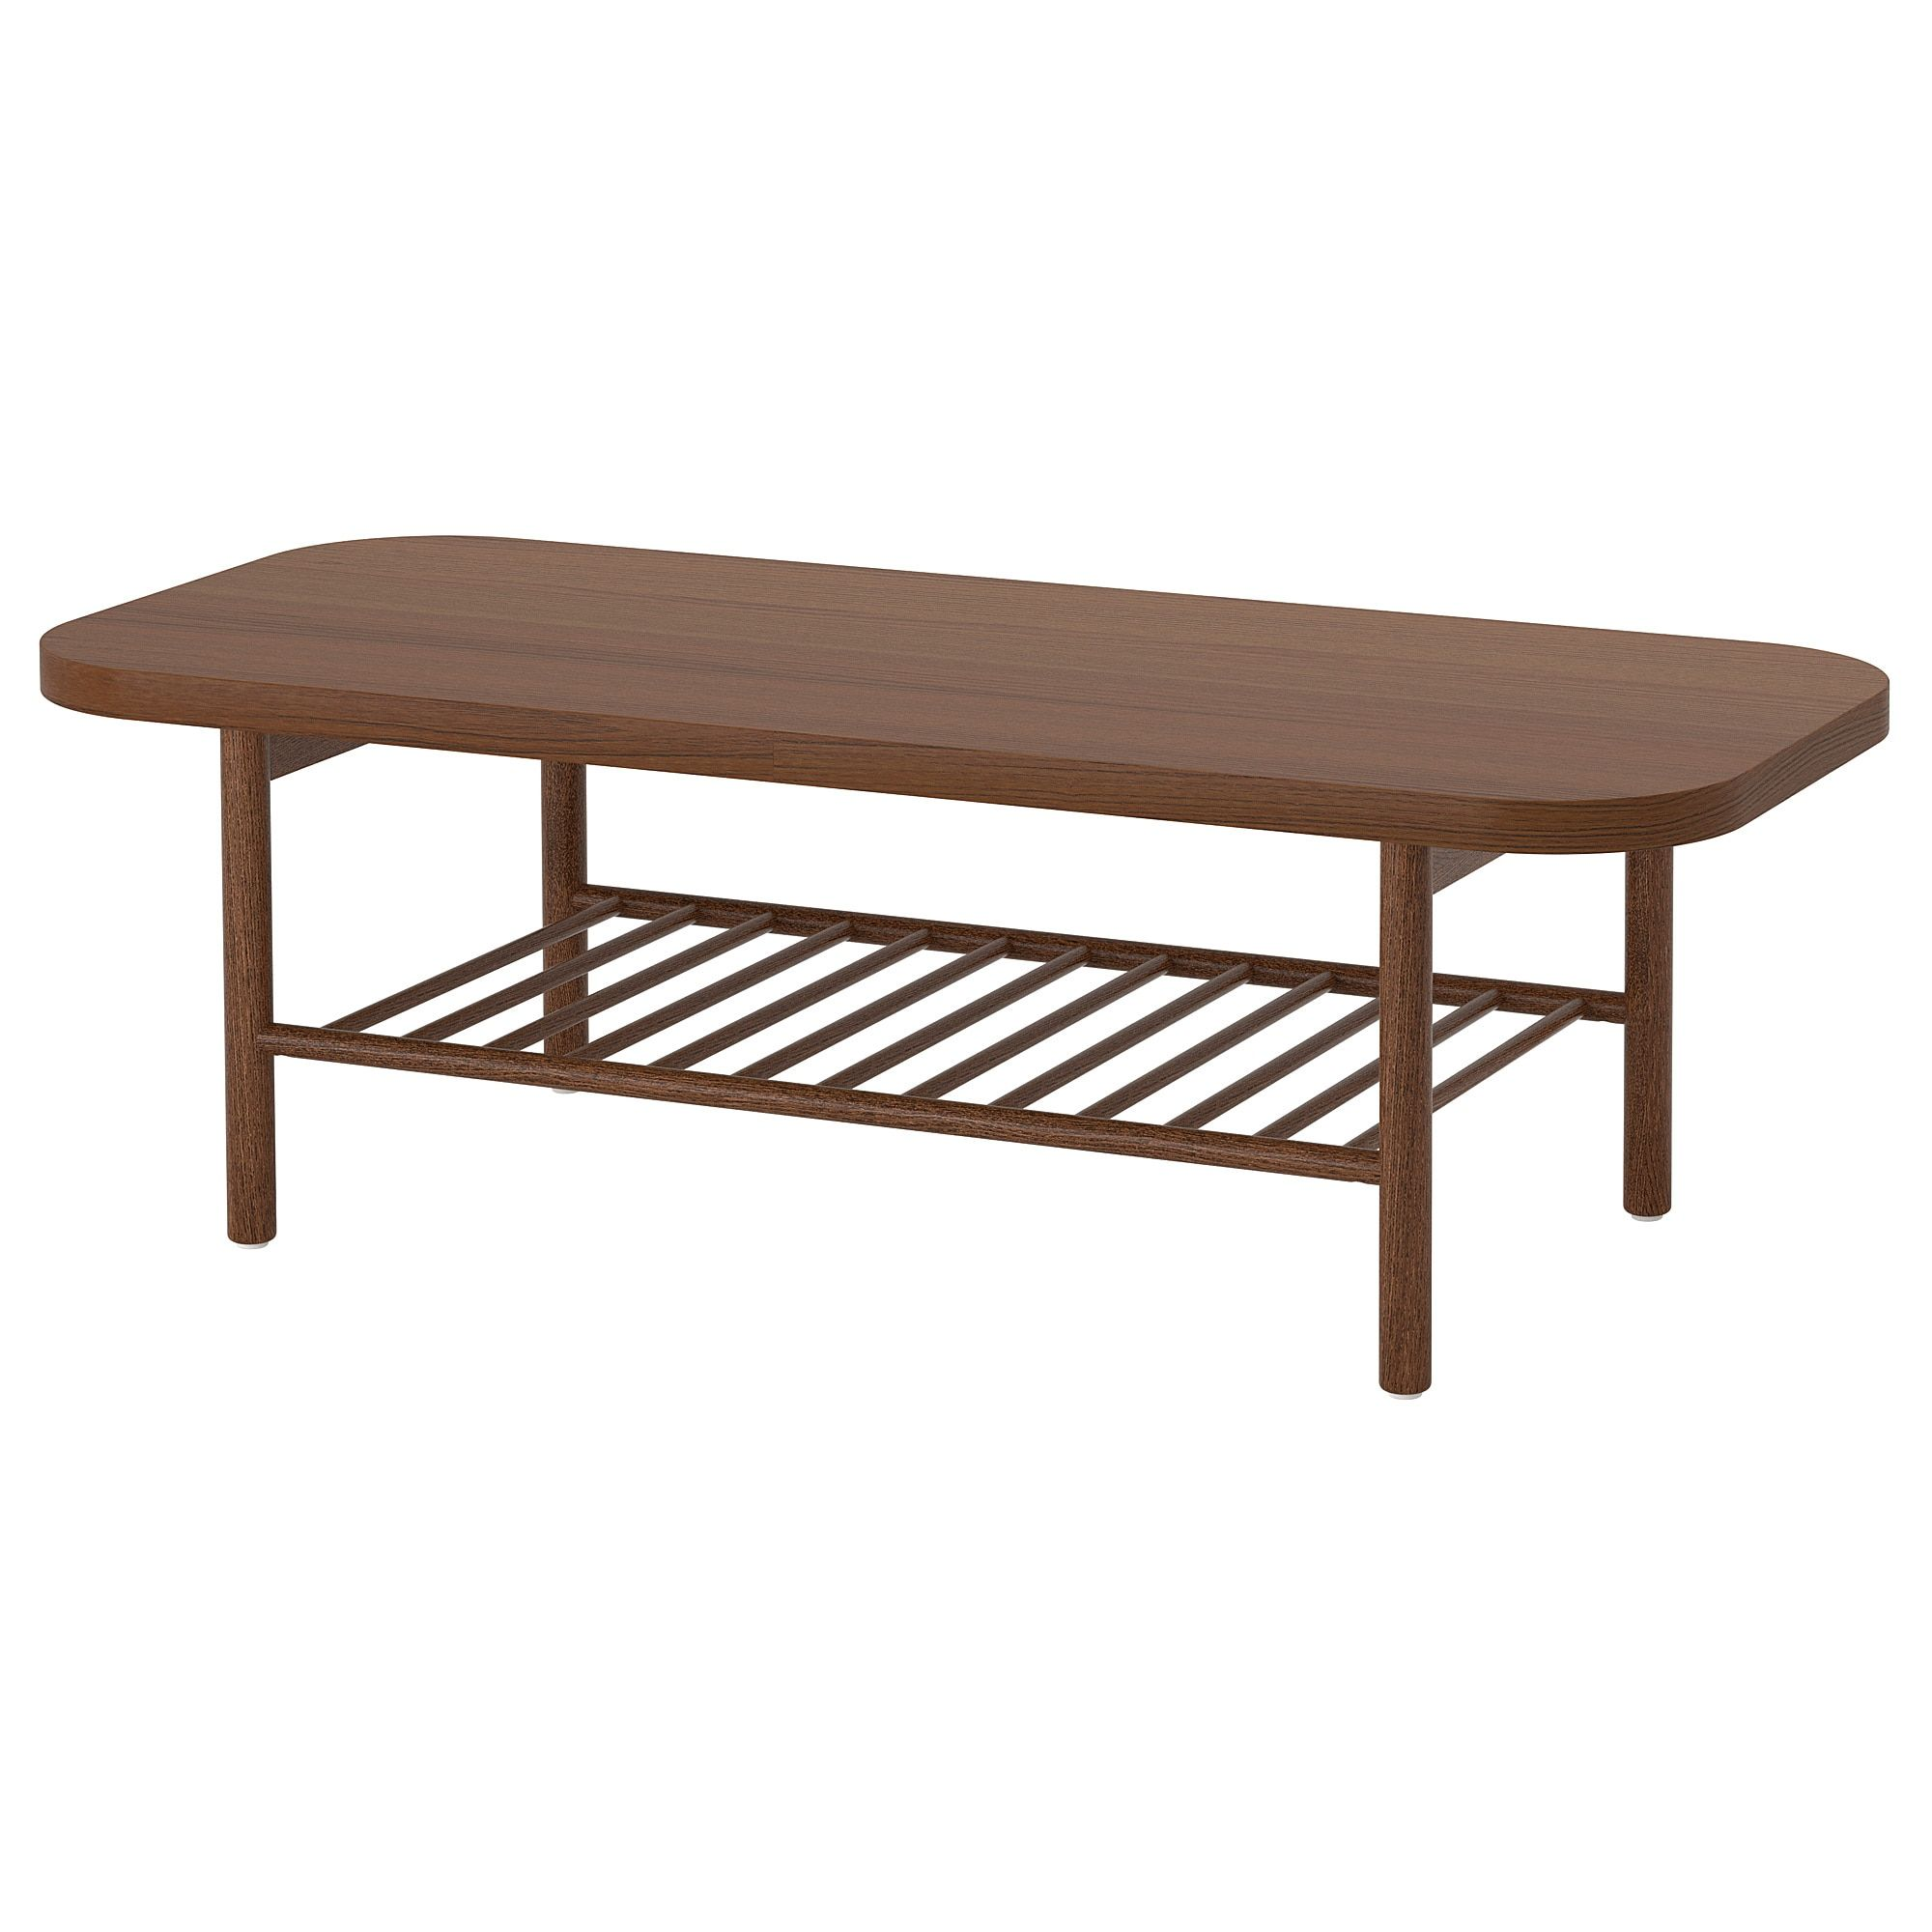 """LISTERBY Coffee table brown 55 1/8x23 5/8 """" (140x60 cm"""